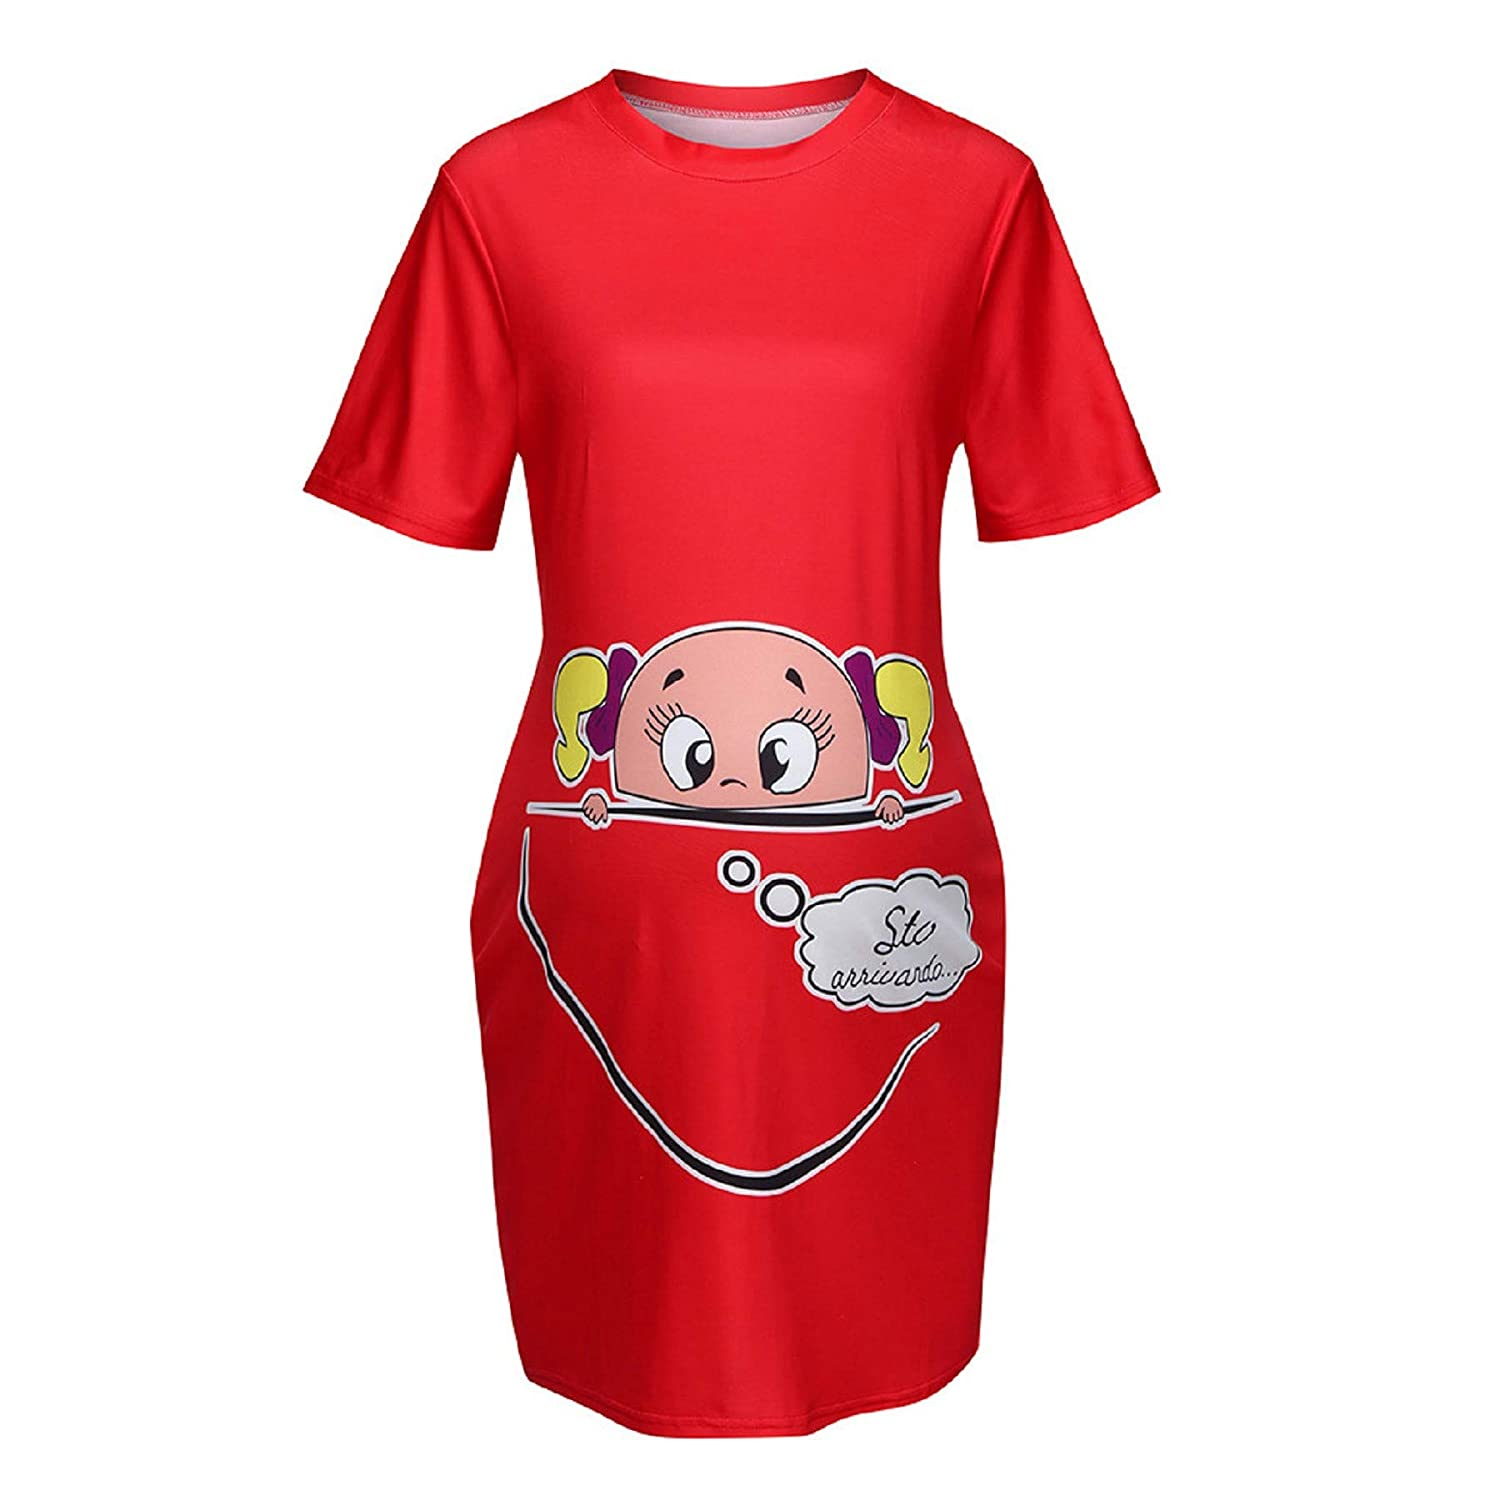 Funny Graphic Print Casual Short Sleeve Round Neck Basic Pregnancy Tops Womens Maternity T-Shirt